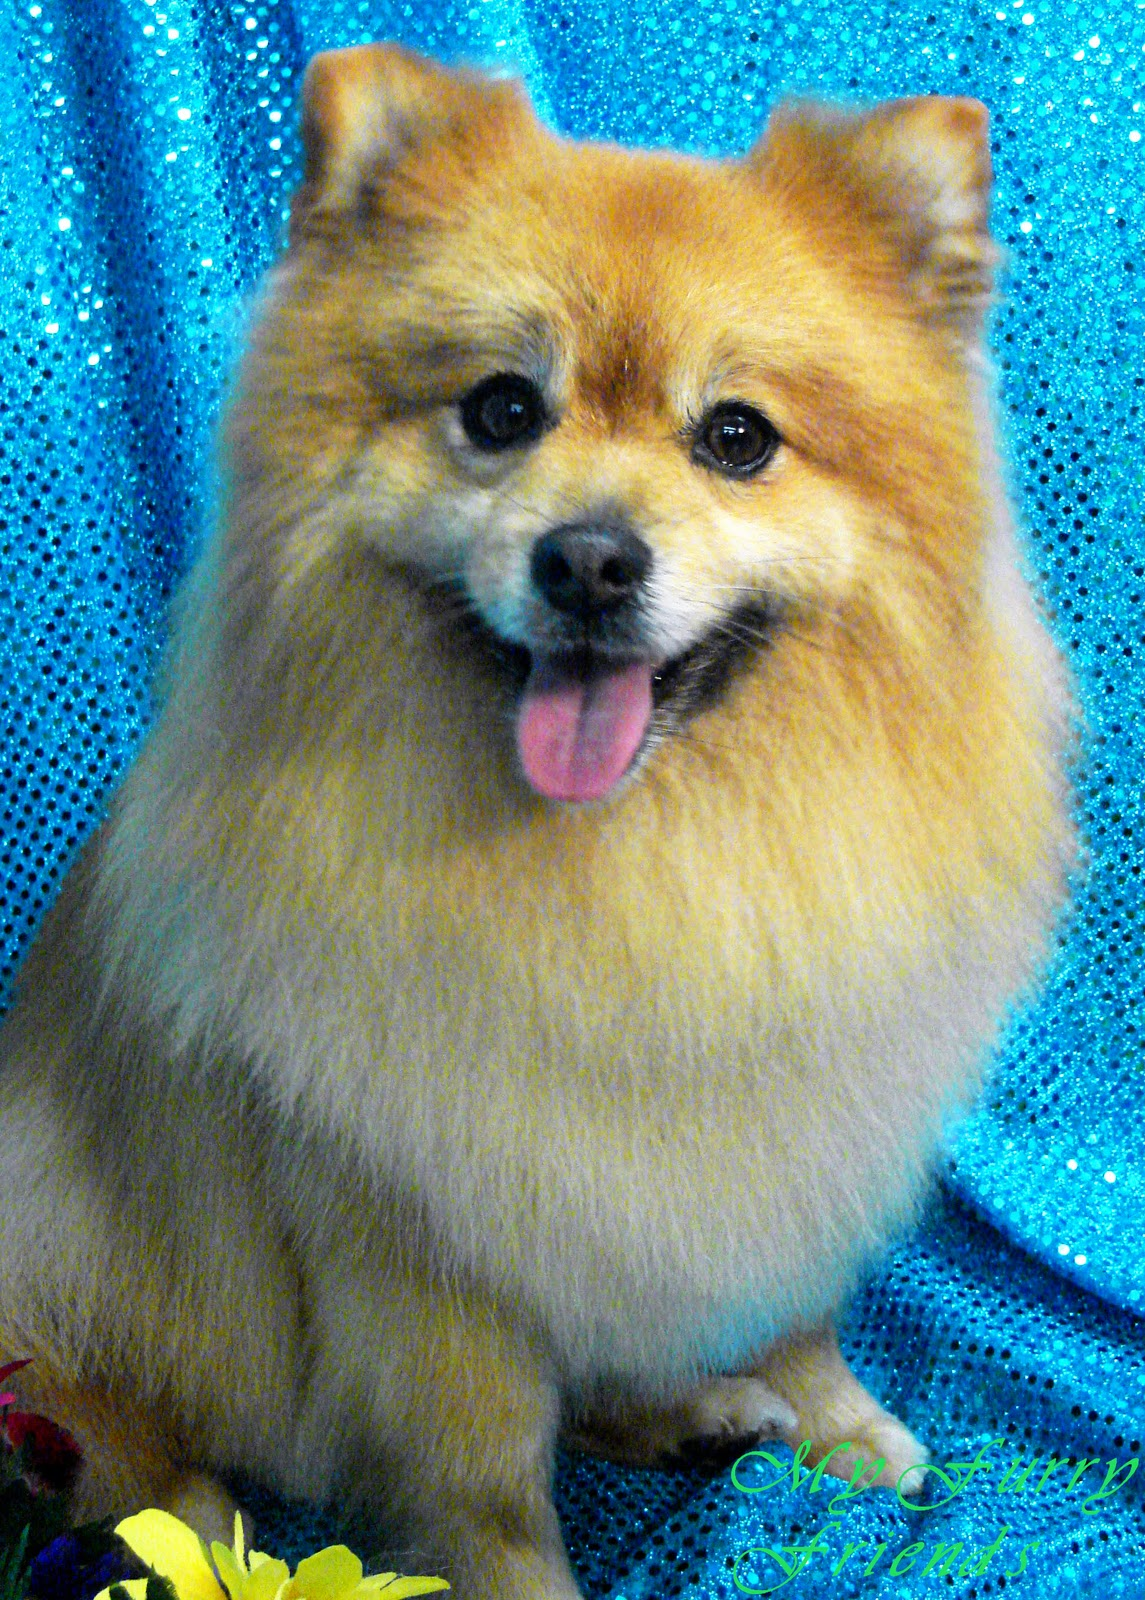 pomeranian trimmed pet grooming the good the bad the furry grooming 2614